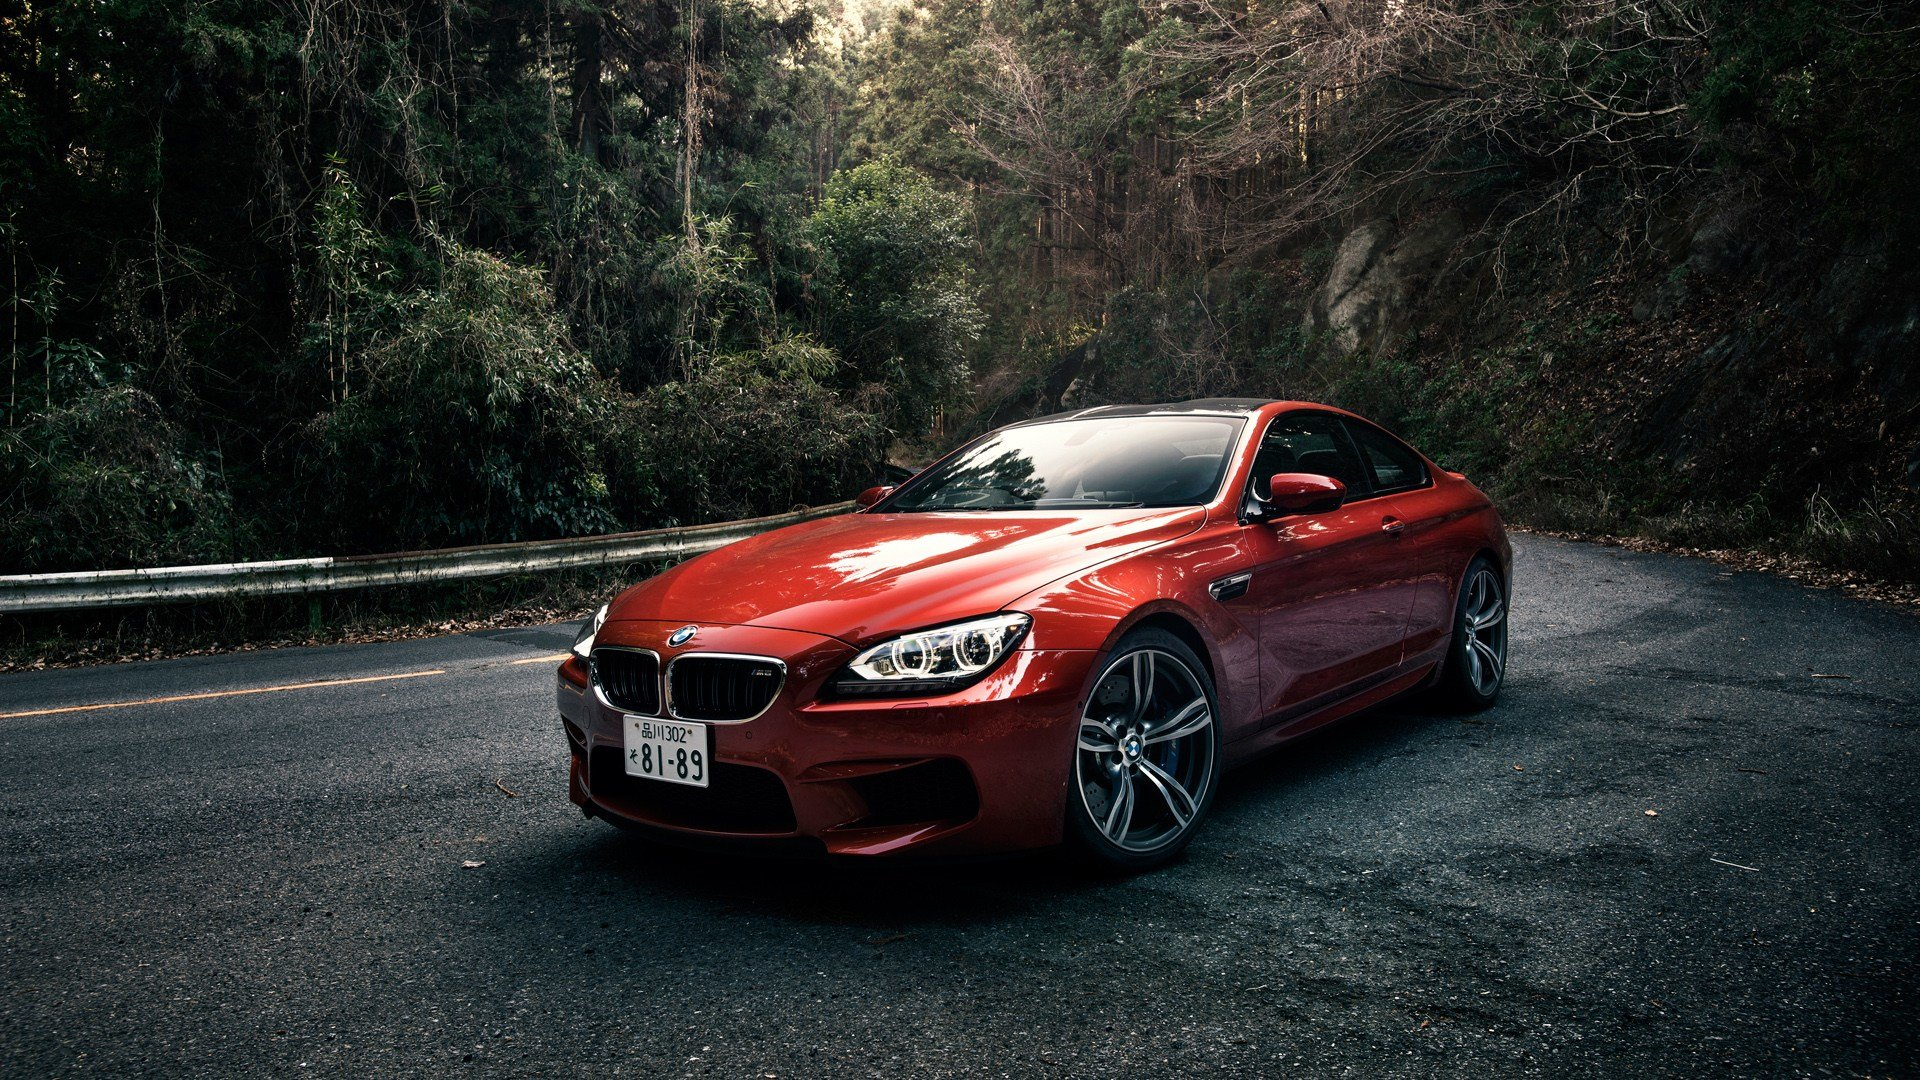 Latest Bmw M6 Wallpapers High Quality Download Free Free Download